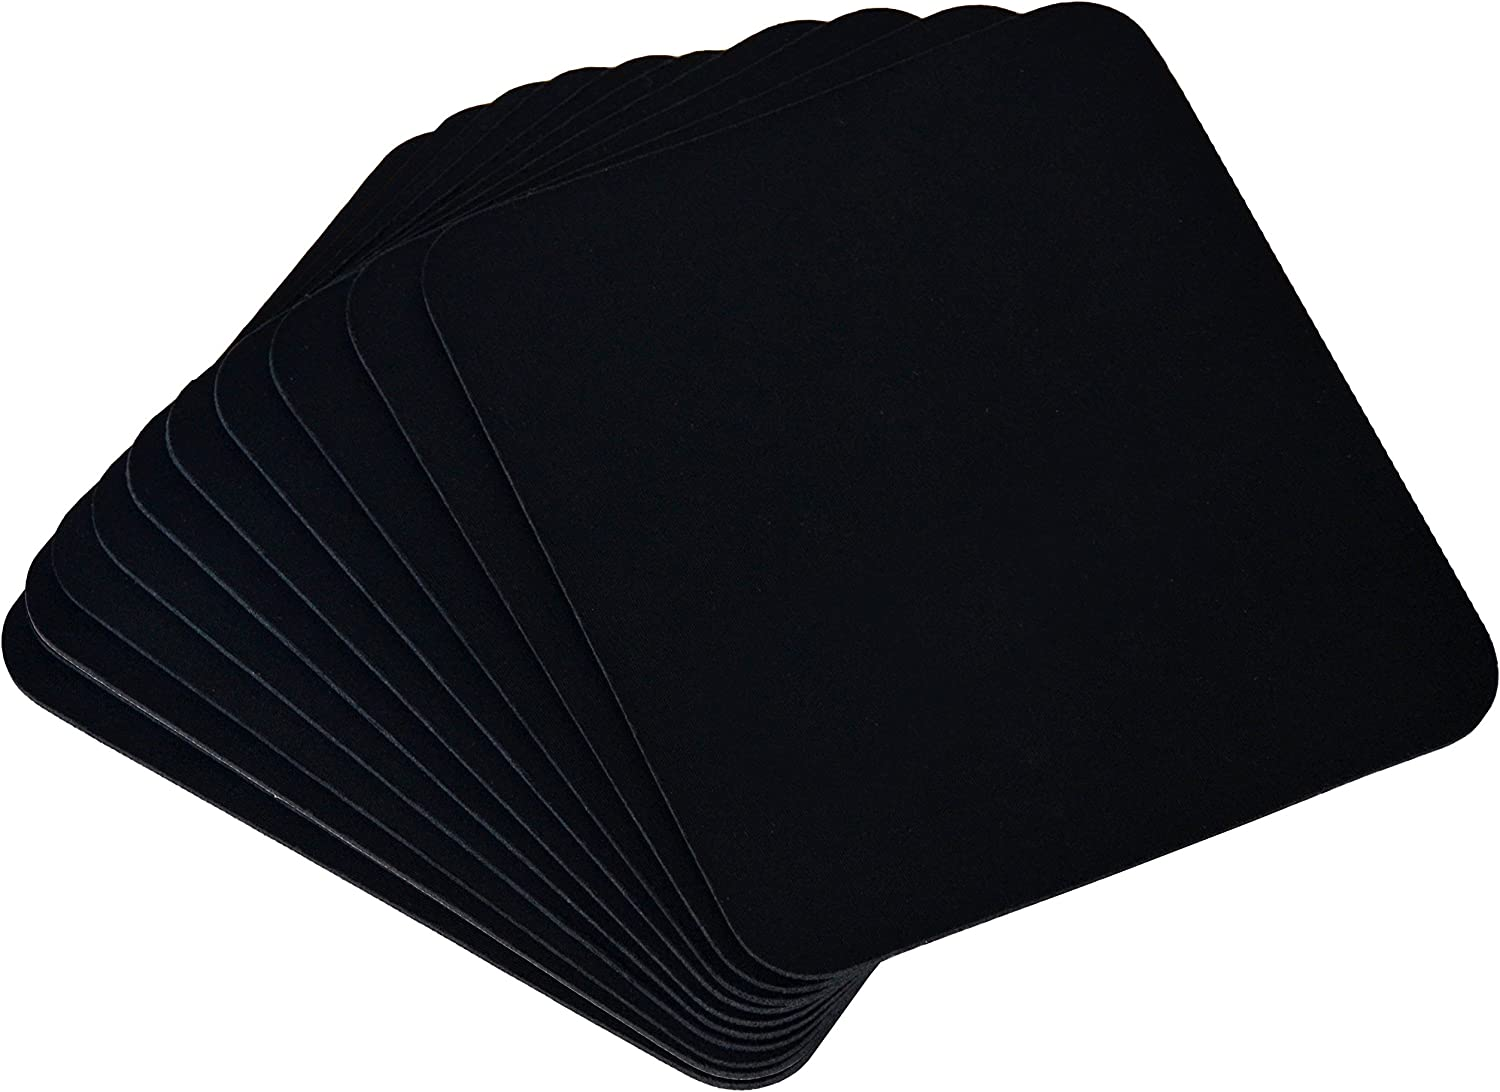 Home Advantage Mouse Pads Bulk Pack 8 inch x 9 3//8 inch Smooth Fabric Mousing Surface Black, 5-Pack